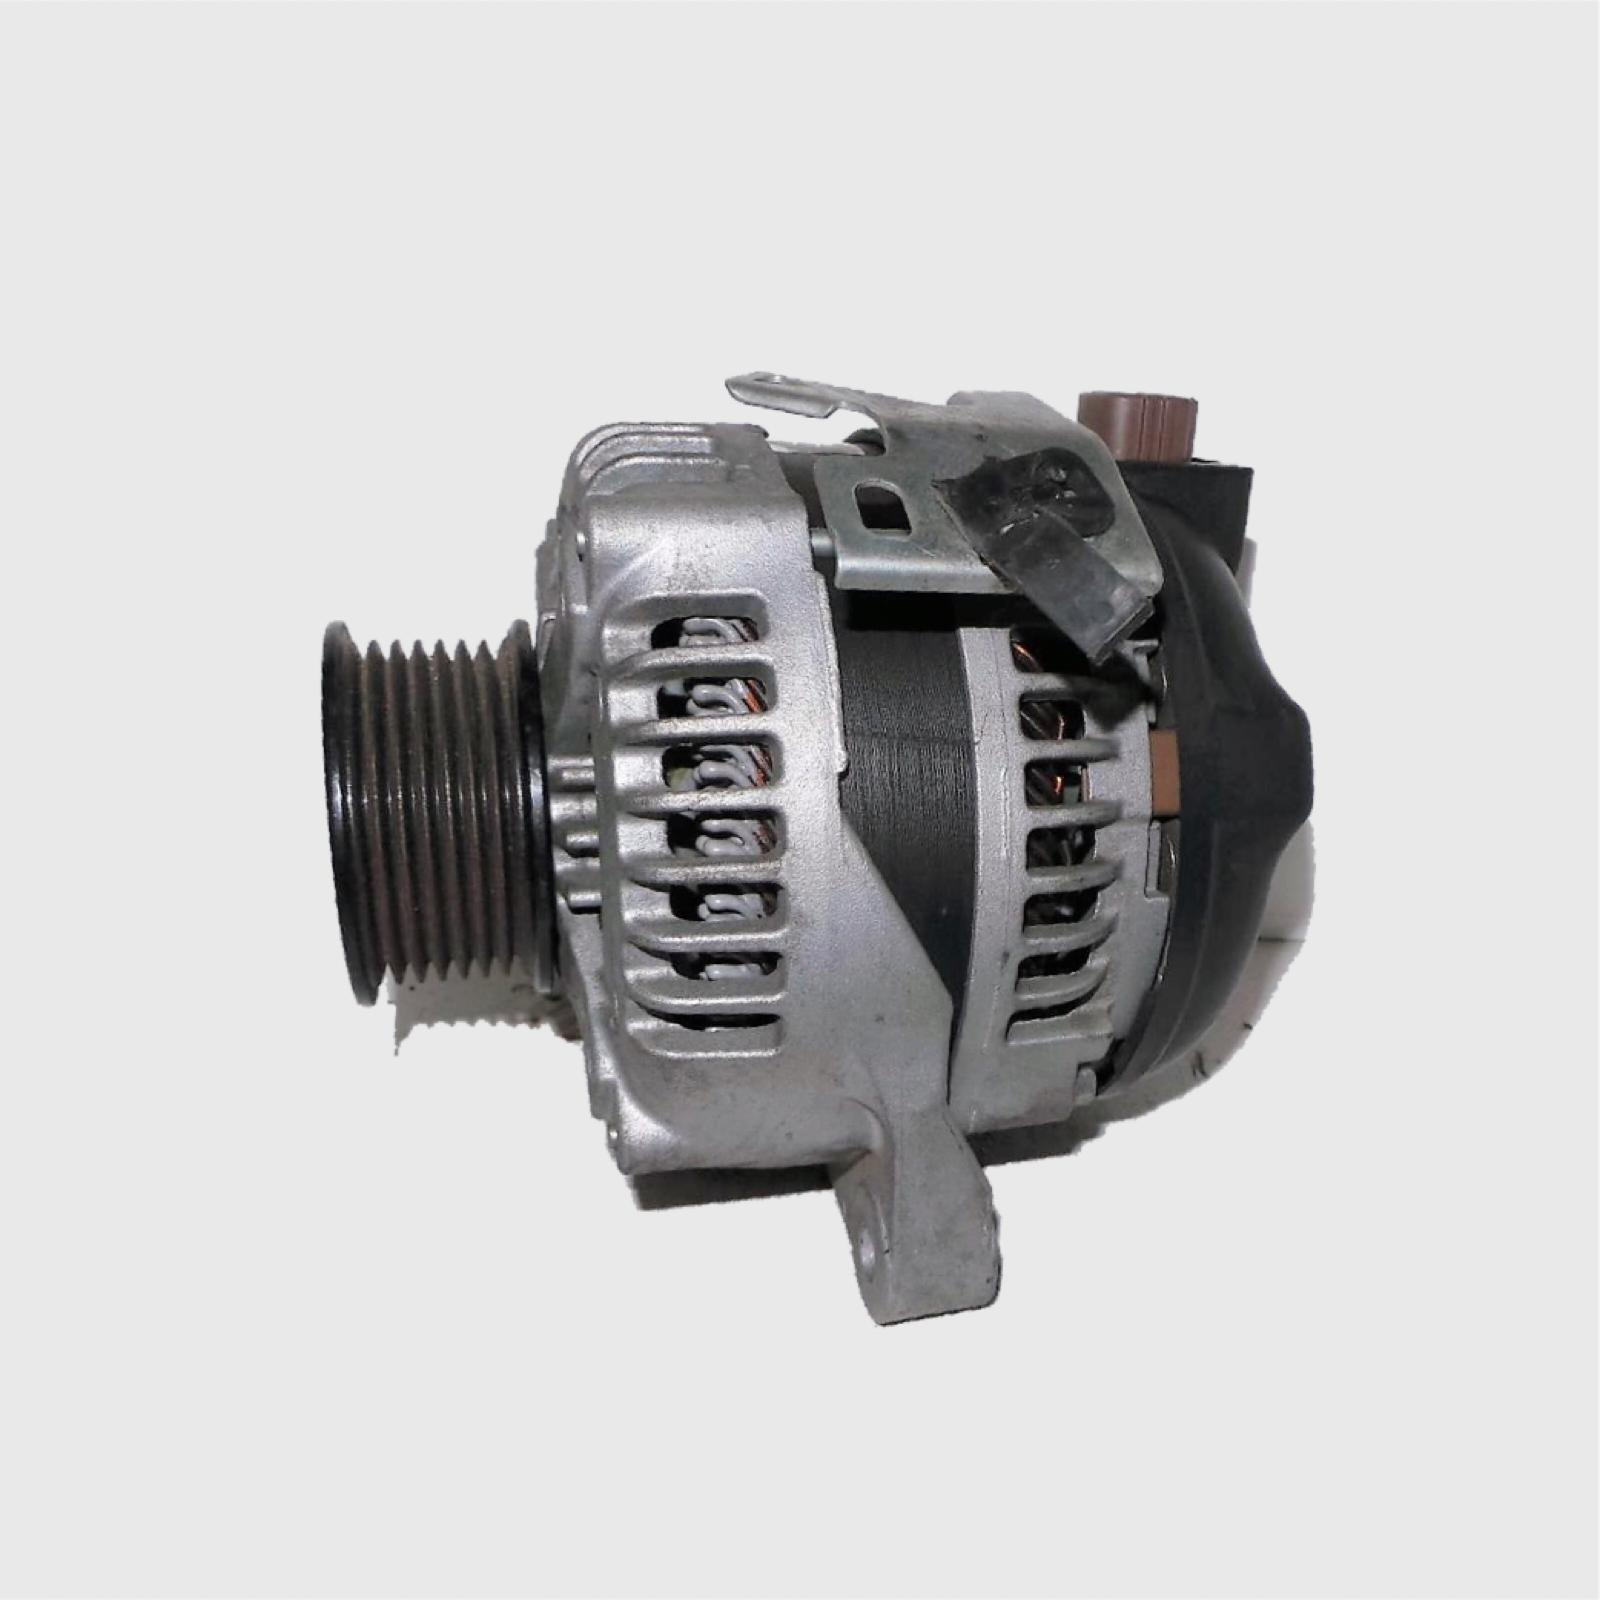 TOYOTA AVENSIS, Alternator, PETROL, ACM2#R, 12/01-12/10